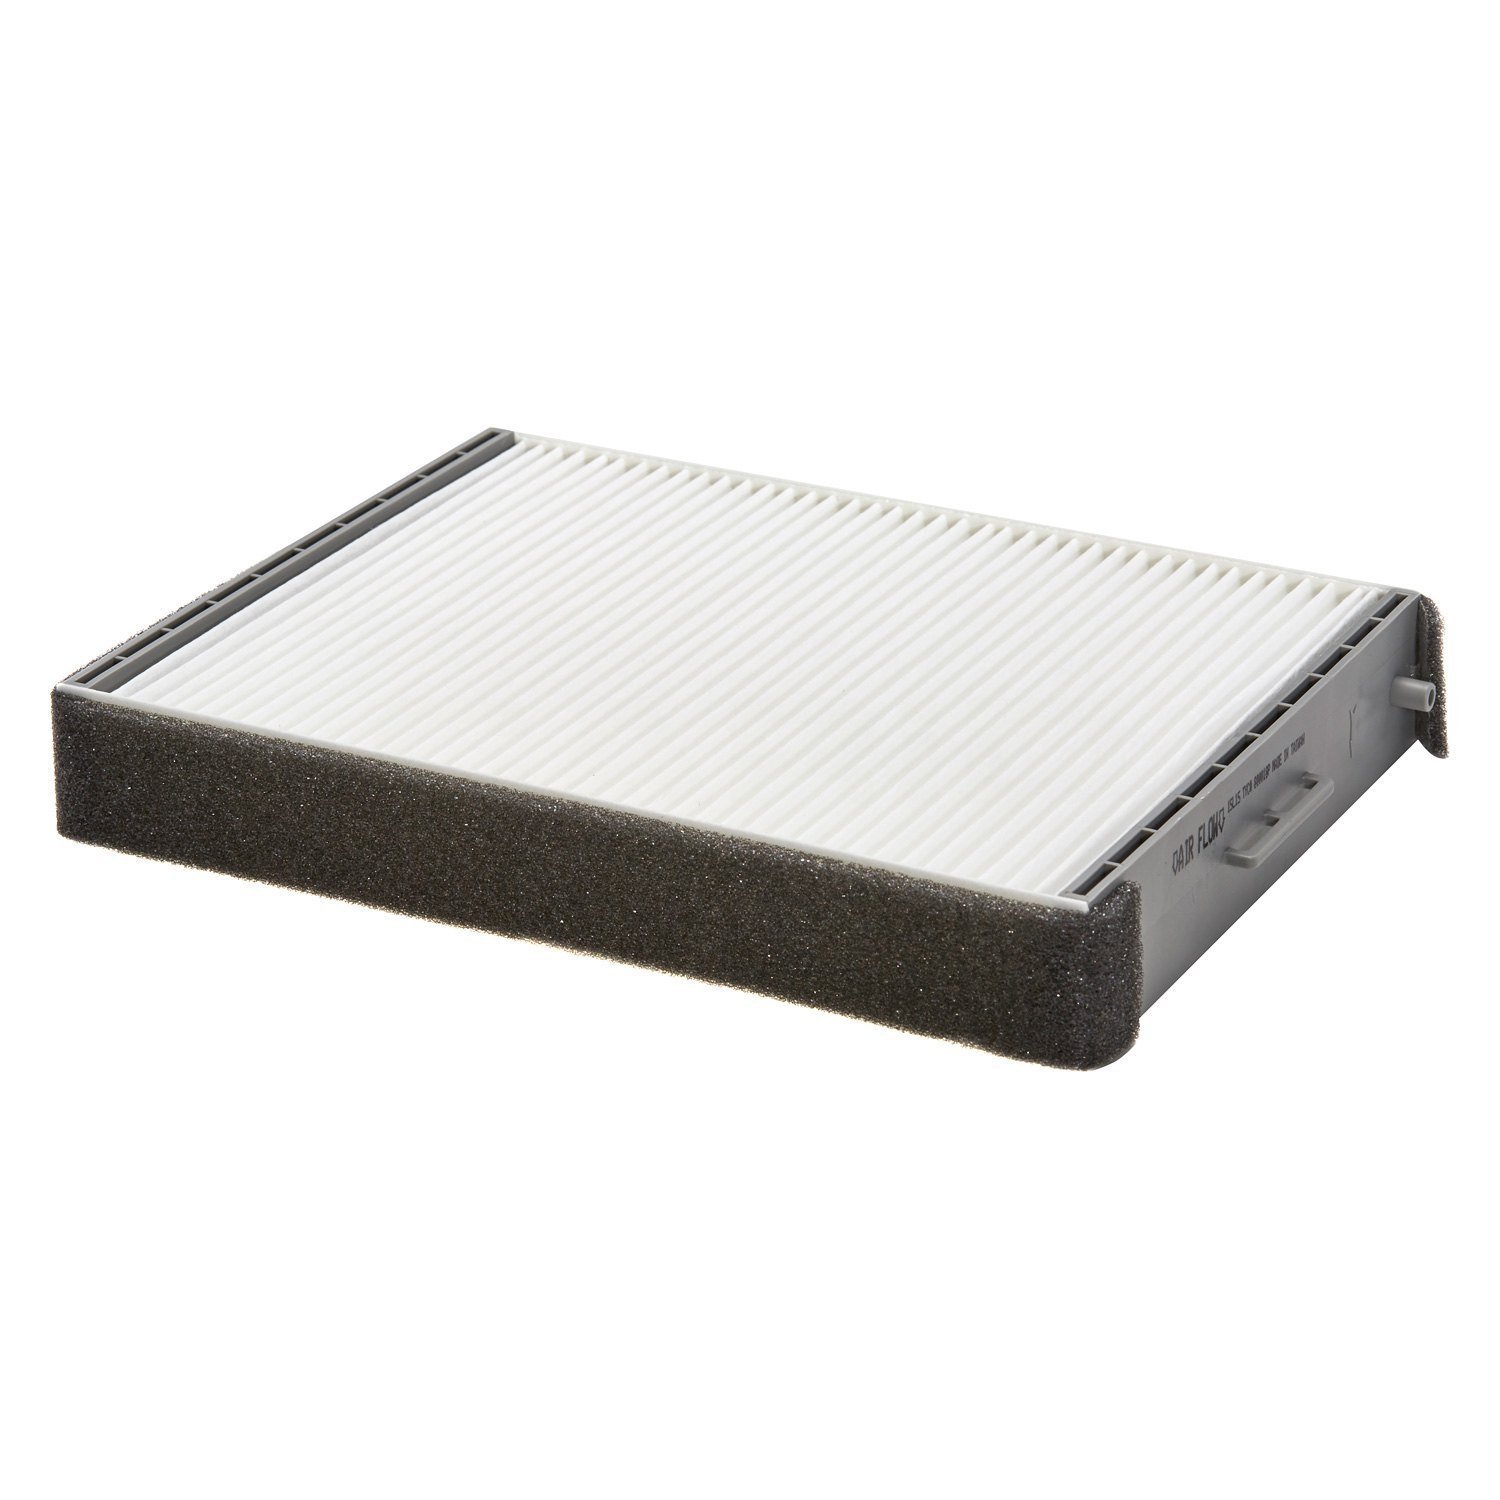 Tyc 800018p cabin air filter for Change cabin air filter